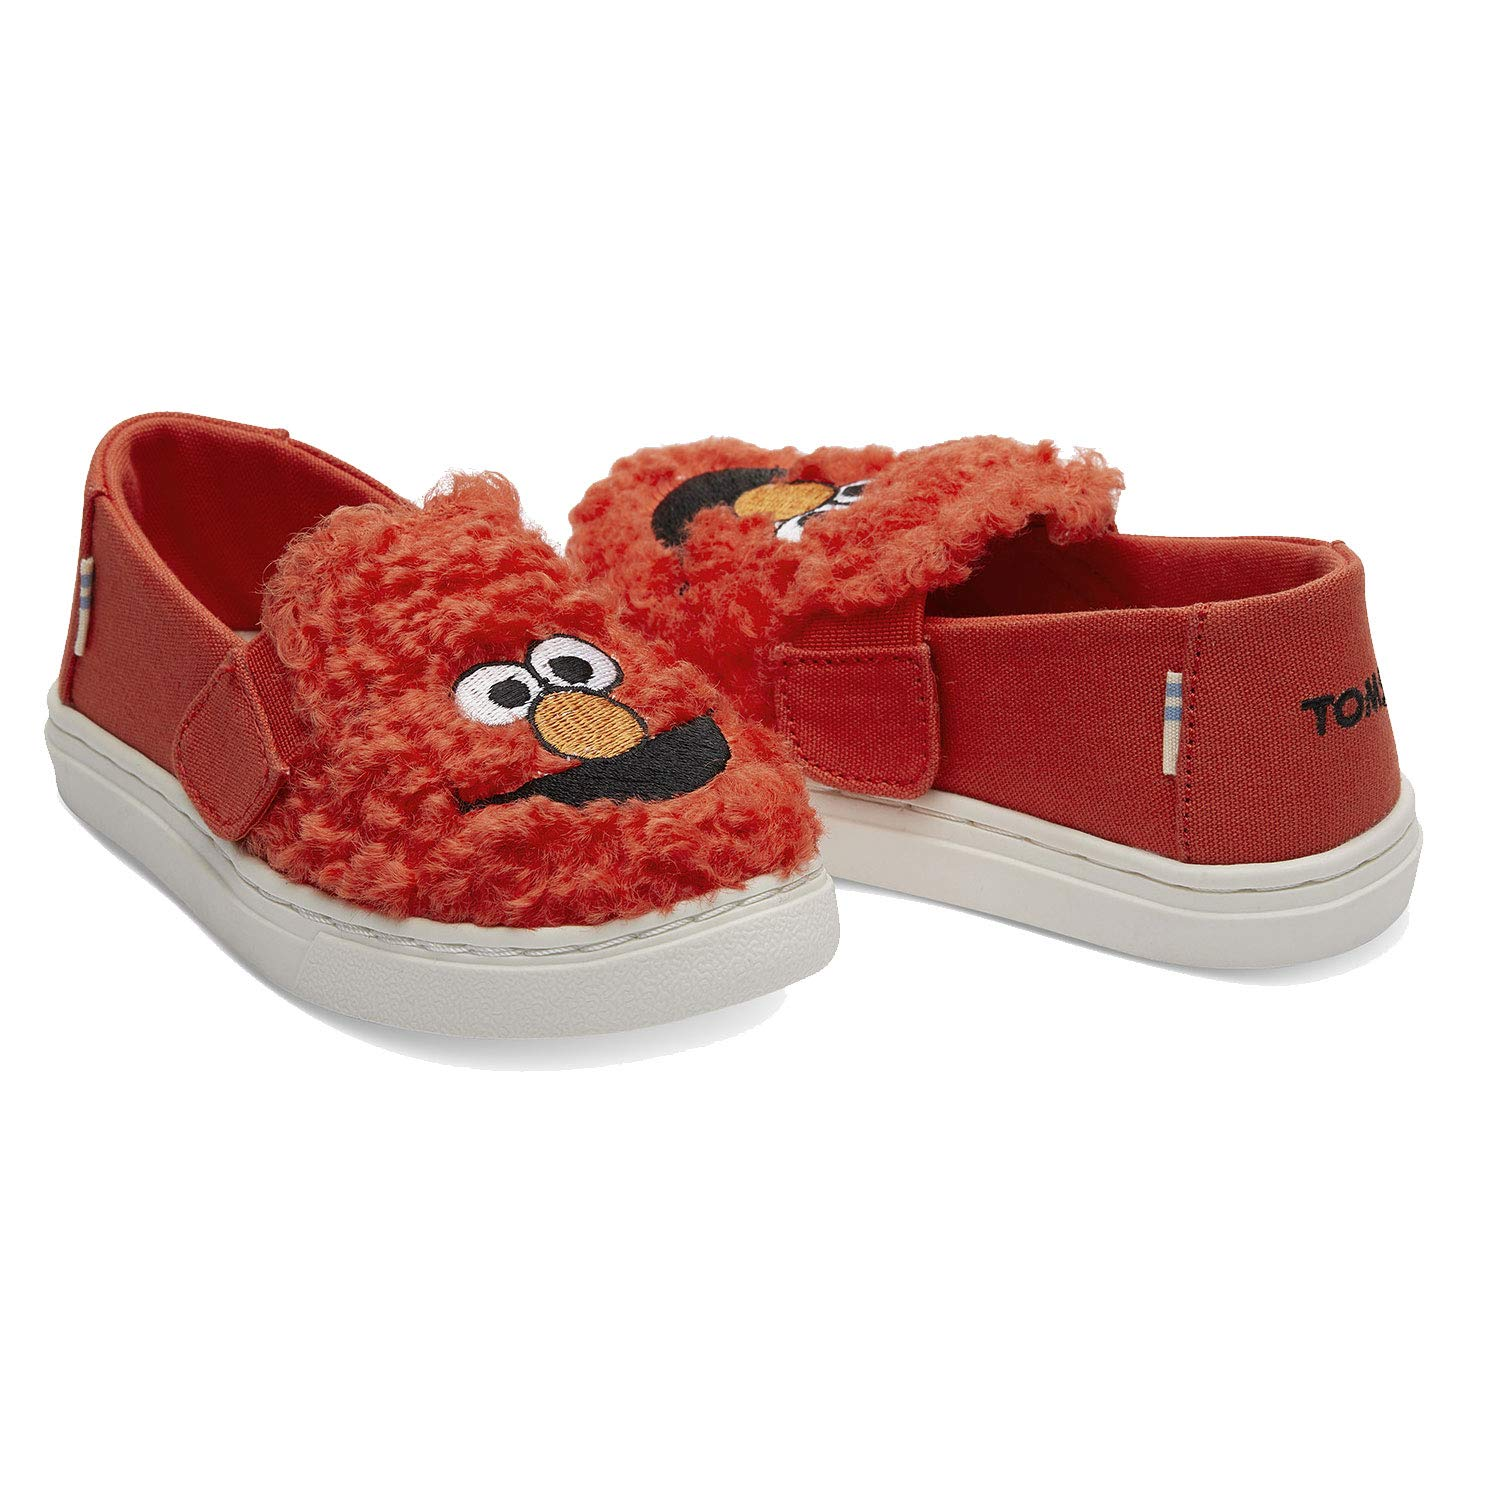 TOMS Sesame Street X Elmo Face Faux Shearling Tiny Luca Slip-Ons 10013649 (Size: 9) Red by TOMS (Image #2)